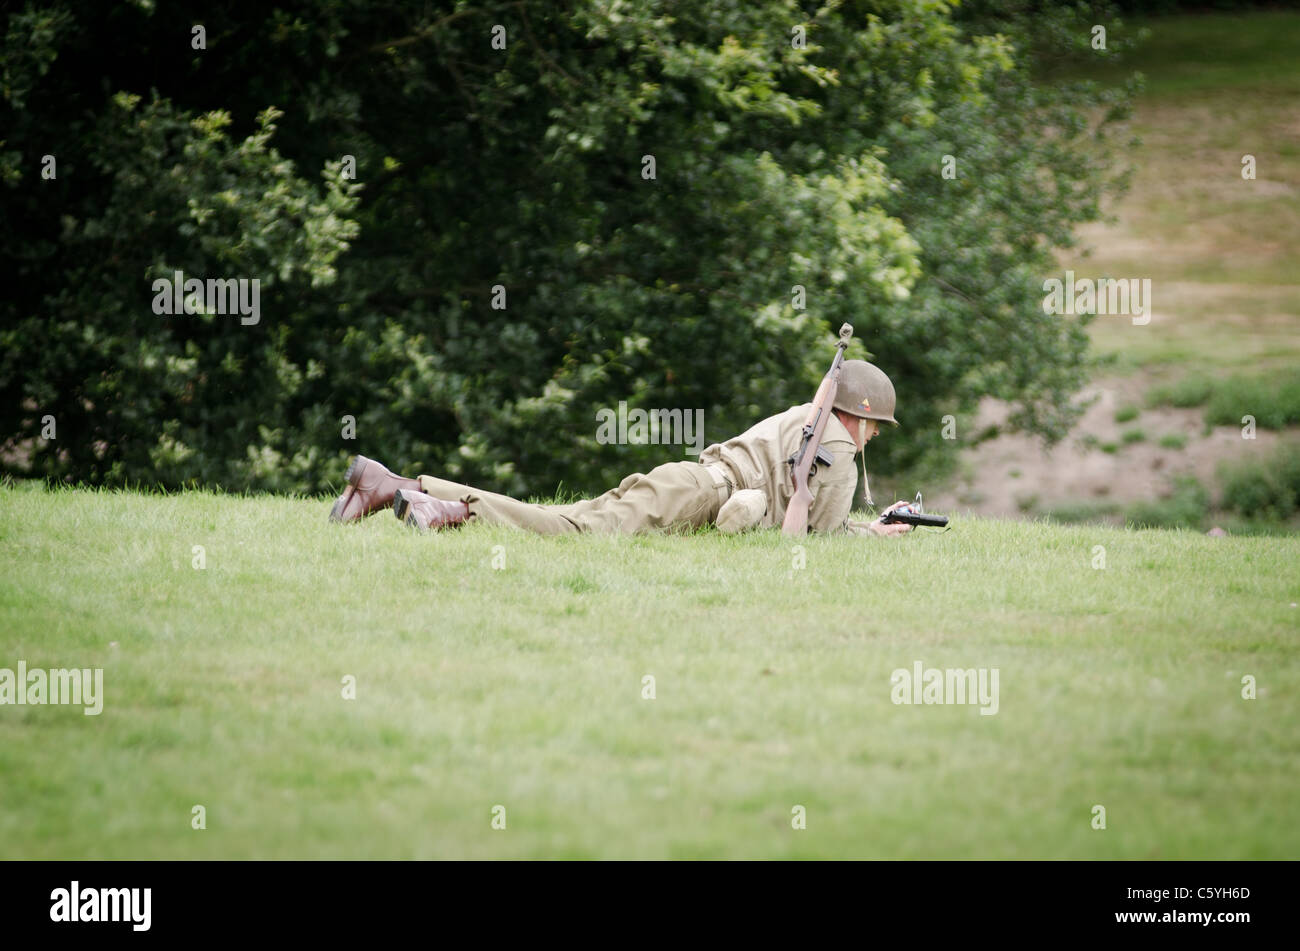 re-enactment WWII American soldiers in Battle - Stock Image